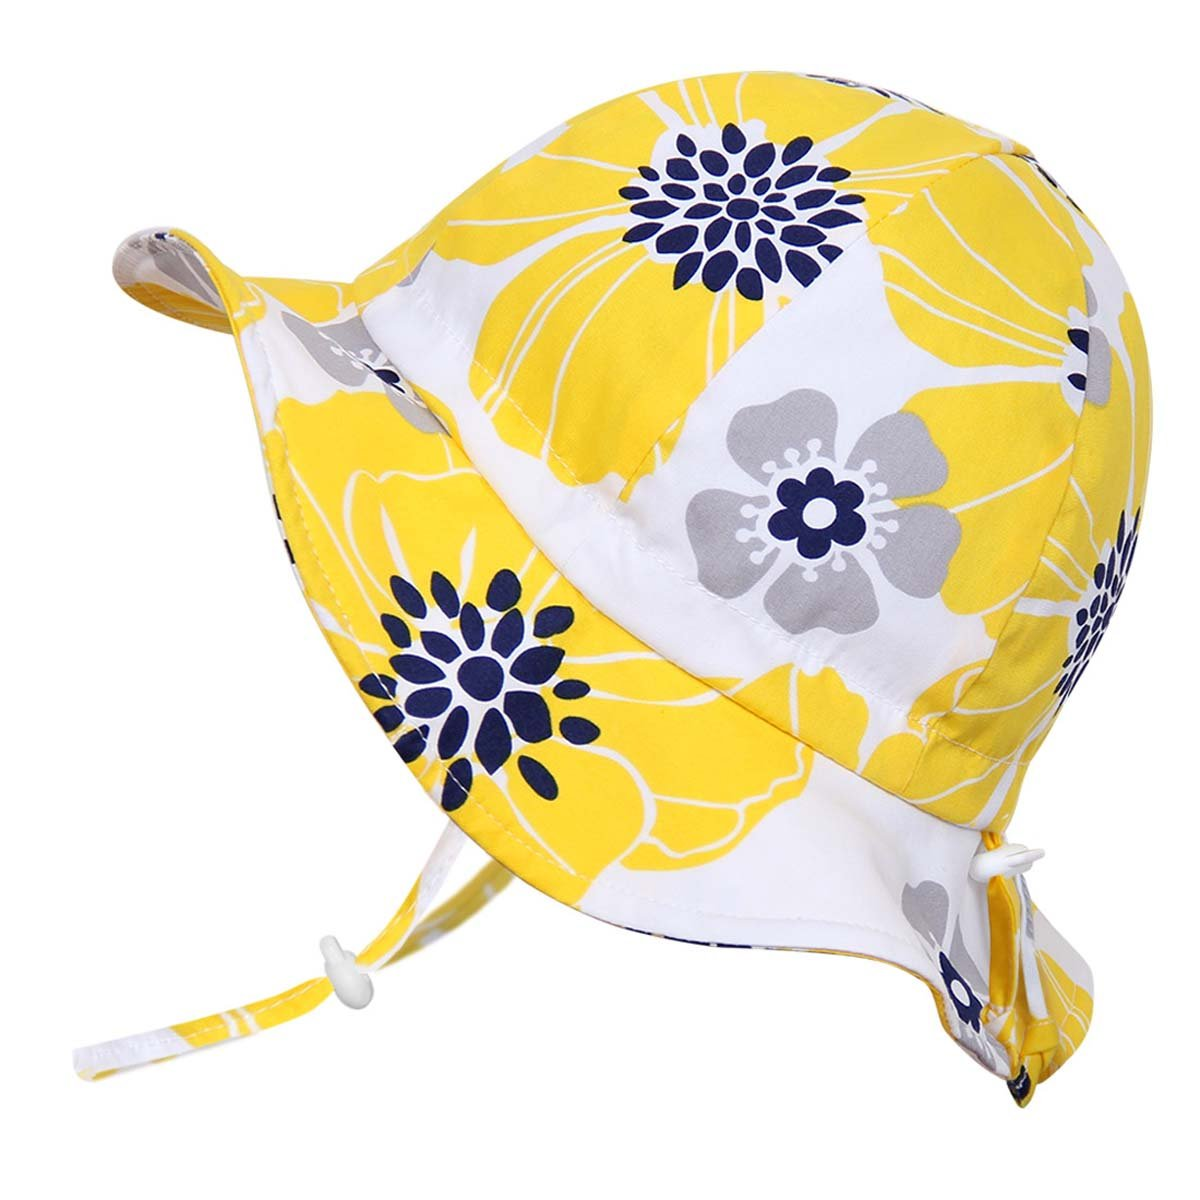 Twinklebelle Children's Flower Cotton Sun Hats 50 UPF, Adjustable, Stay-On, Packable (L: 2-12Y, Floppy Hat: Yellow Flower)